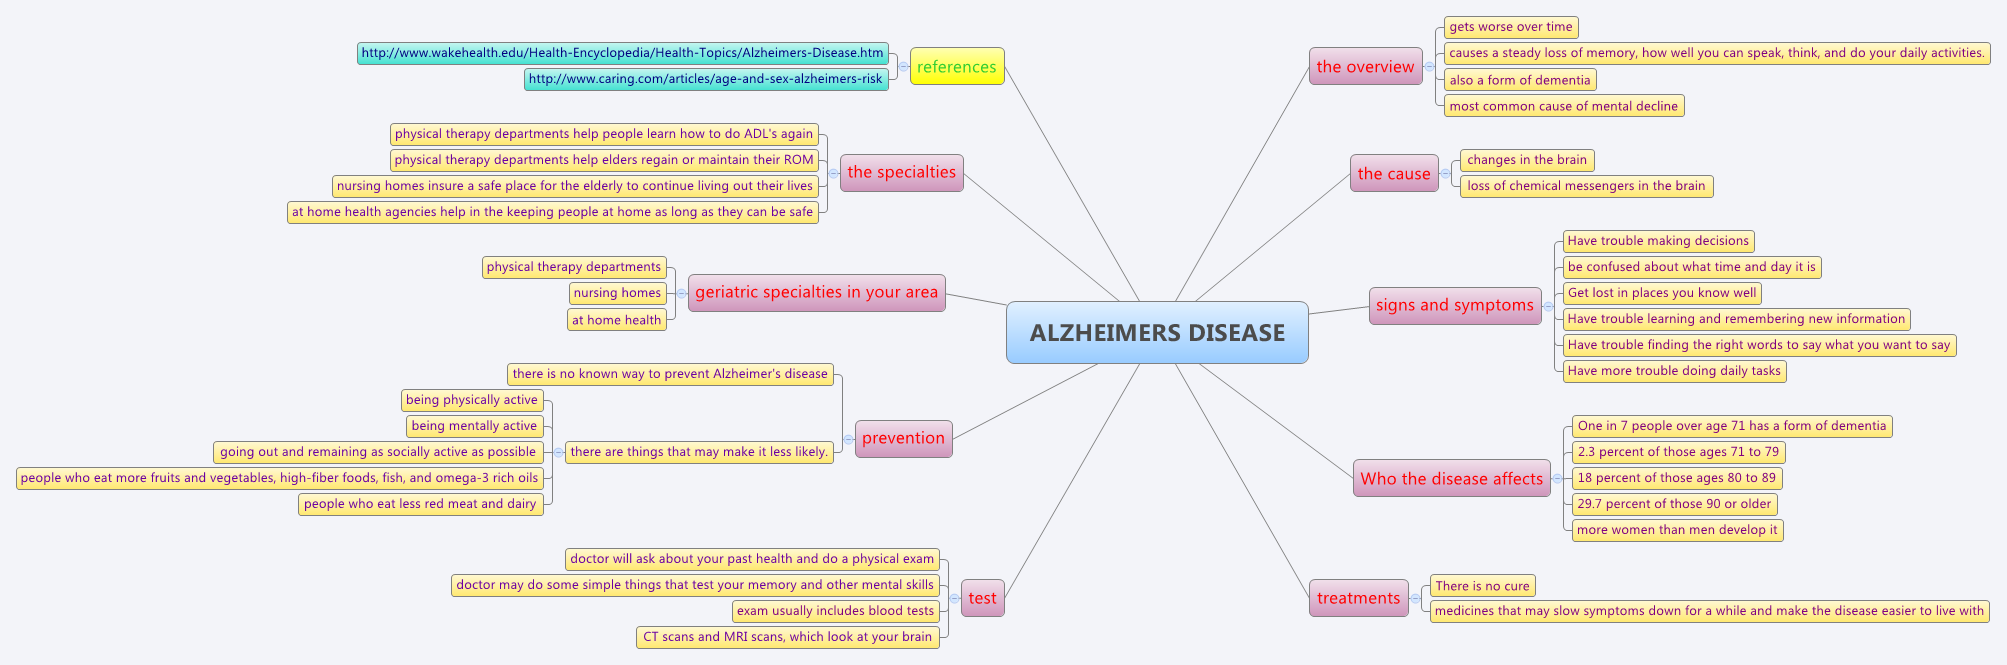 Is There A Test For Alzheimers >> ALZHEIMERS DISEASE - XMind - Mind Mapping Software